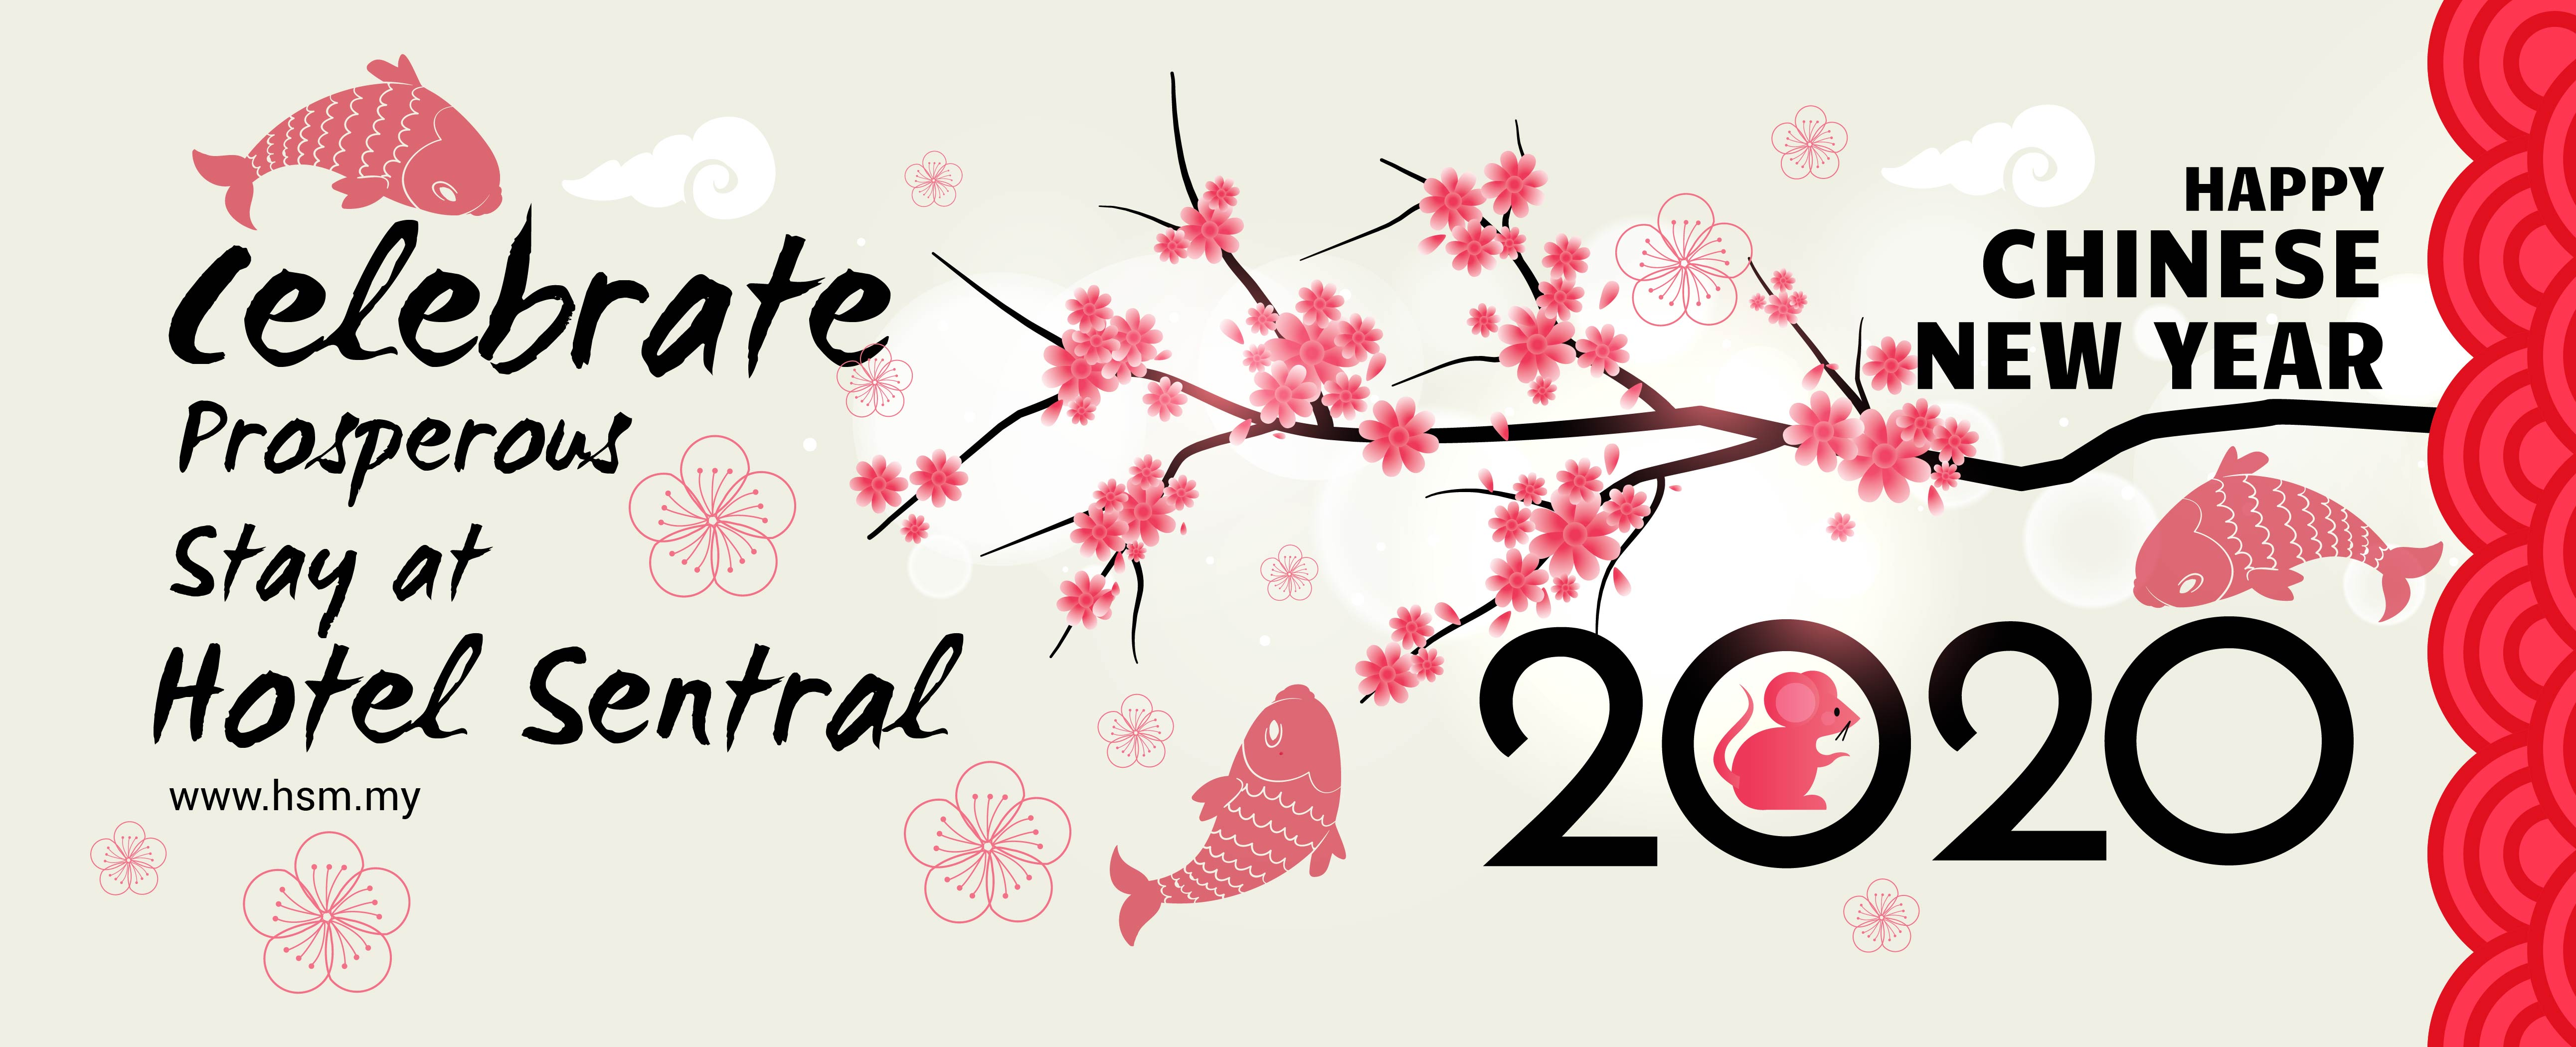 Hotel Sentral Group - Chinese New Year Banner